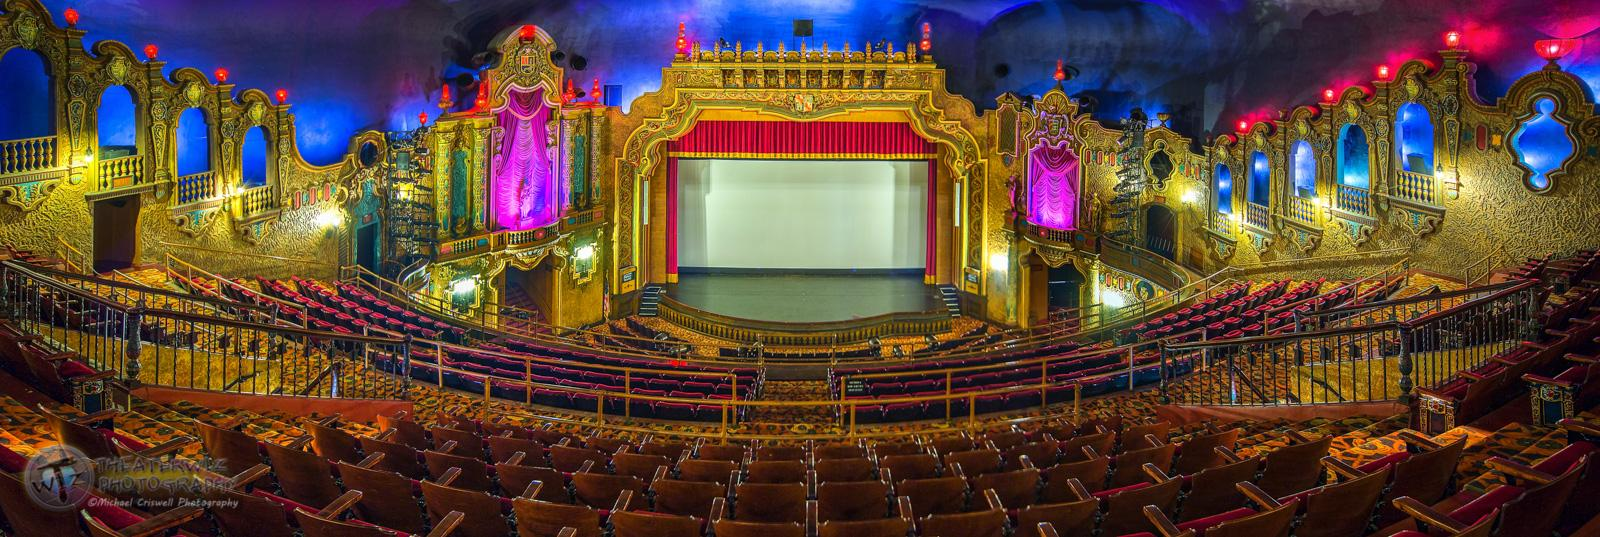 The Grand Palace Theater